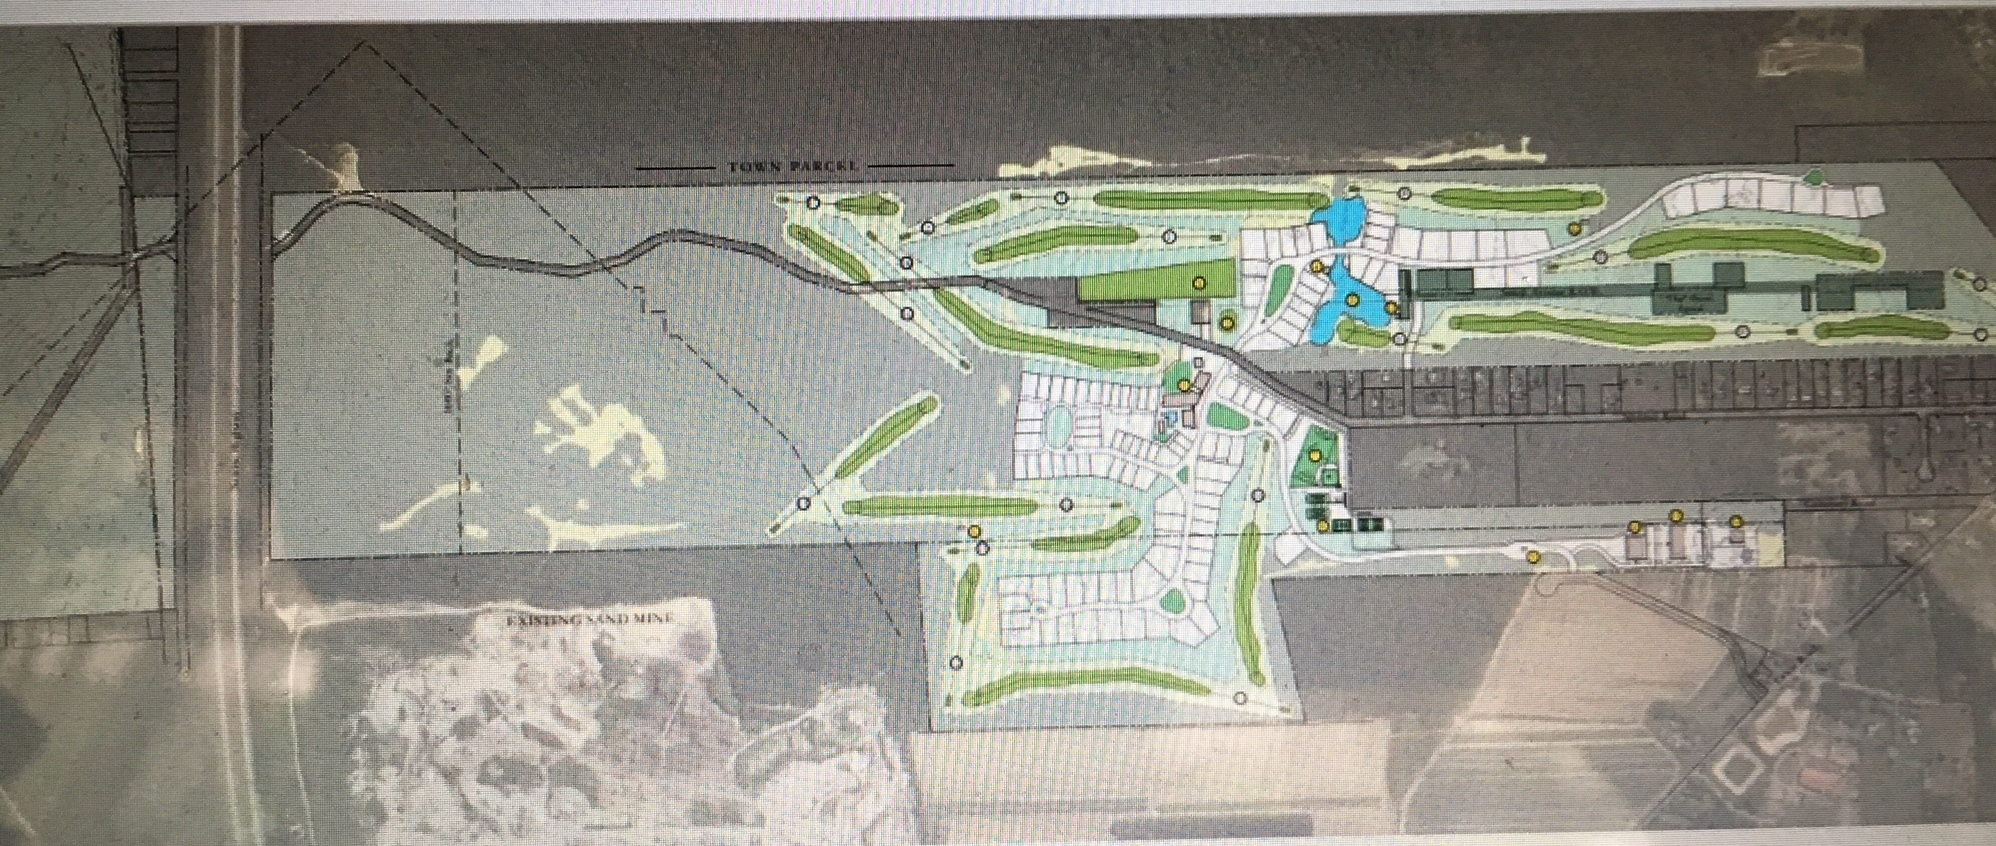 A revised map of the Lewis Road Planned Residential Development.